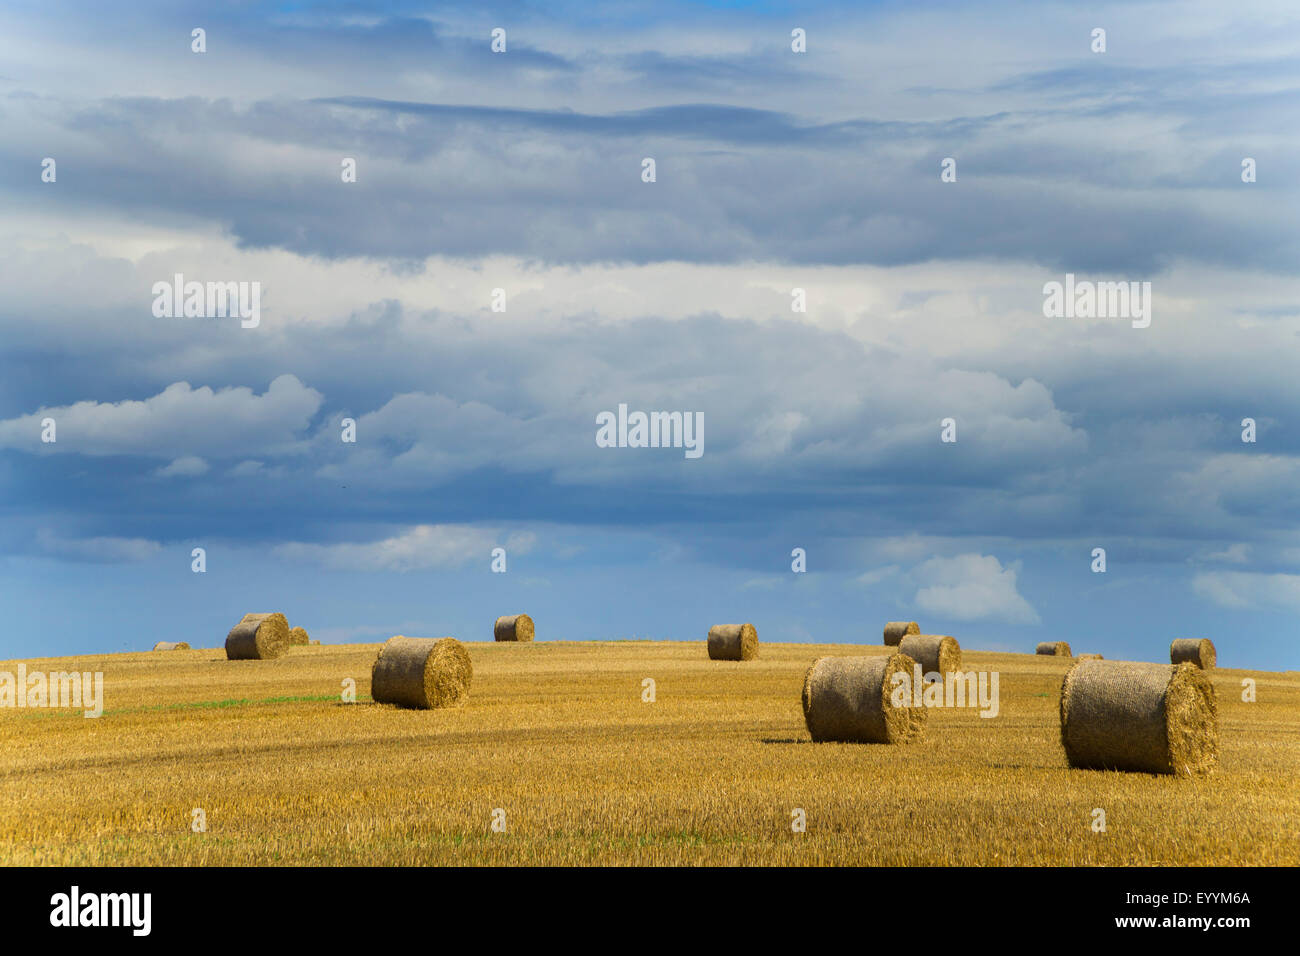 bales of straw on stubble field at upcoming thunderstorm, Germany, Saxony - Stock Image